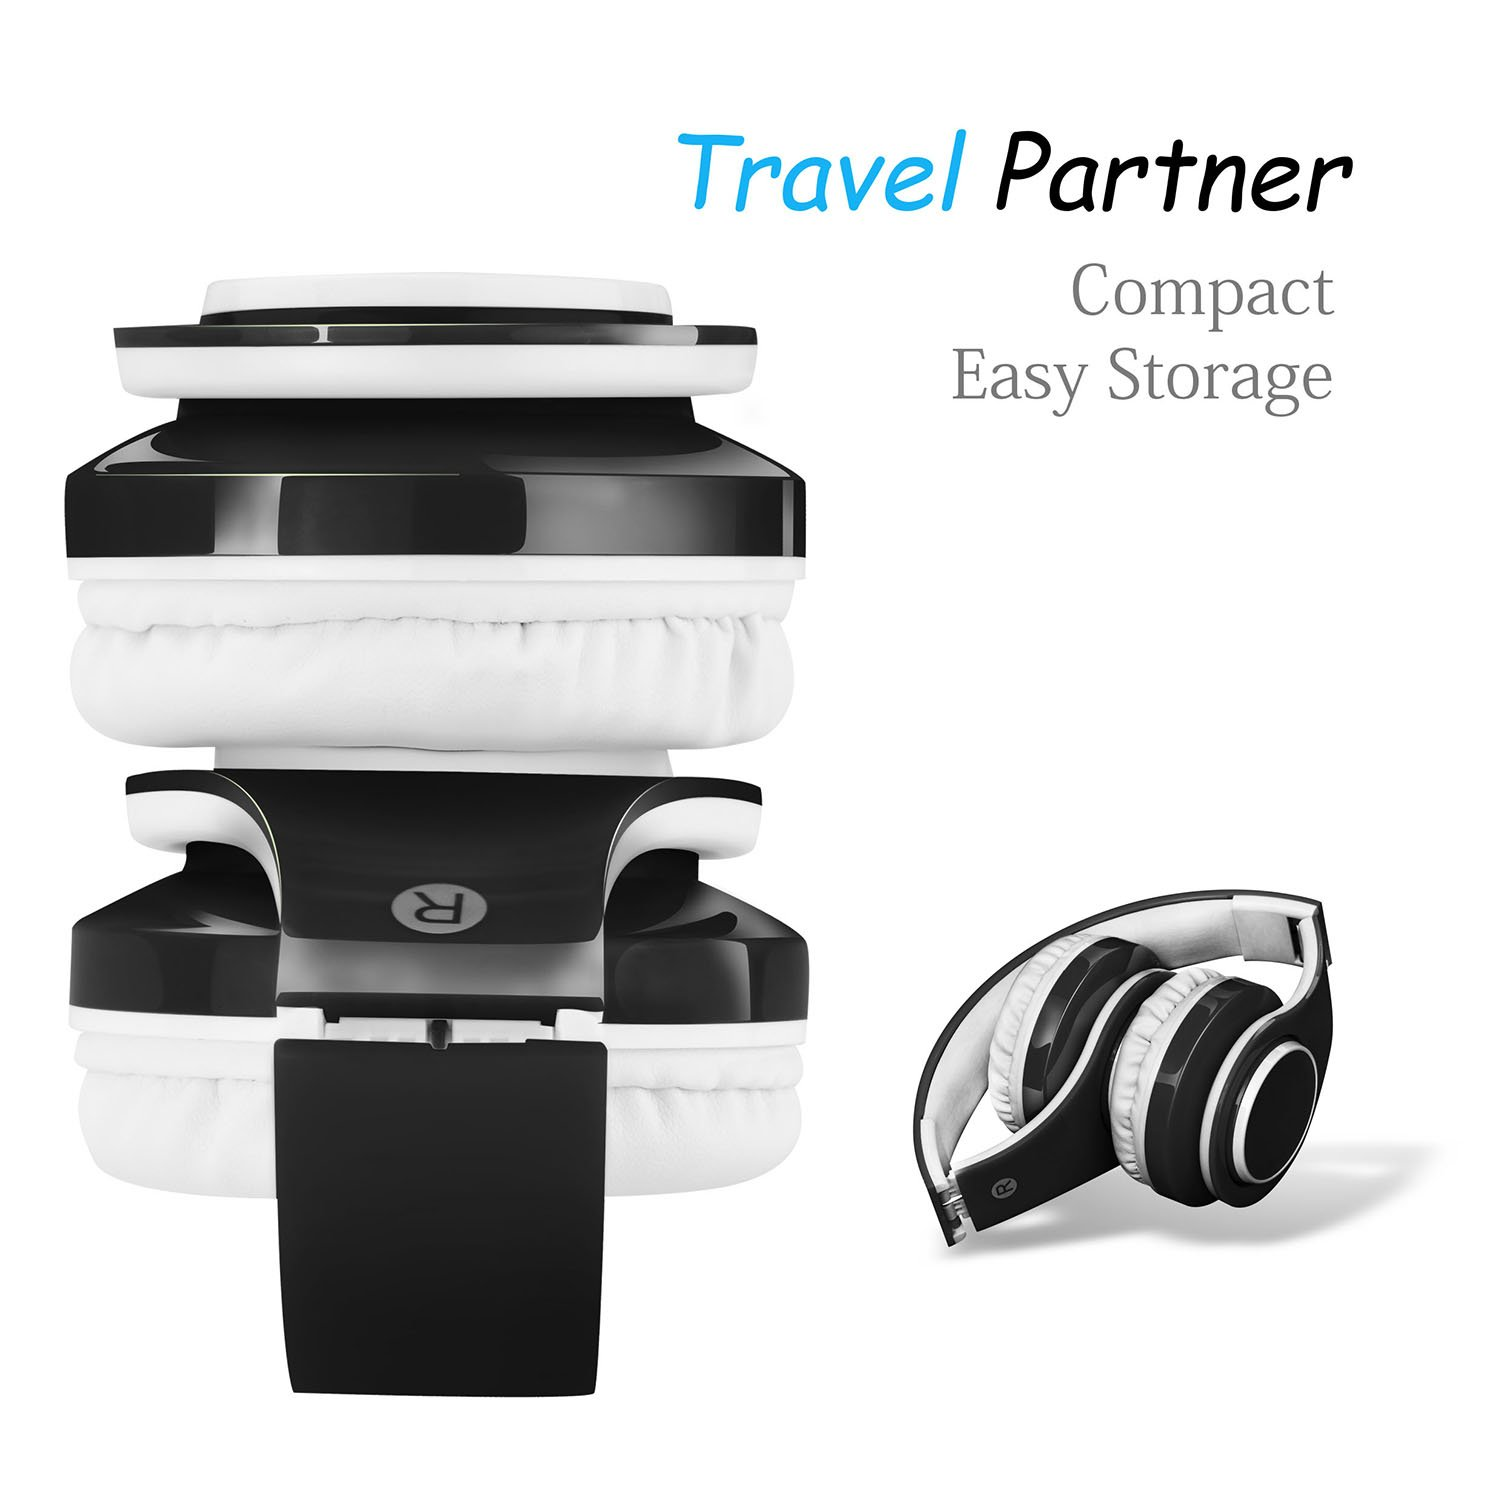 Long Playing time Safey Volume Limited Build-in Mic 3.5mm Jack Wireless//Wired Headphones Kids Headphones Bluetooth Wireless On-Ear Foldable Stereo Sound Headset SD Card Slot Purple